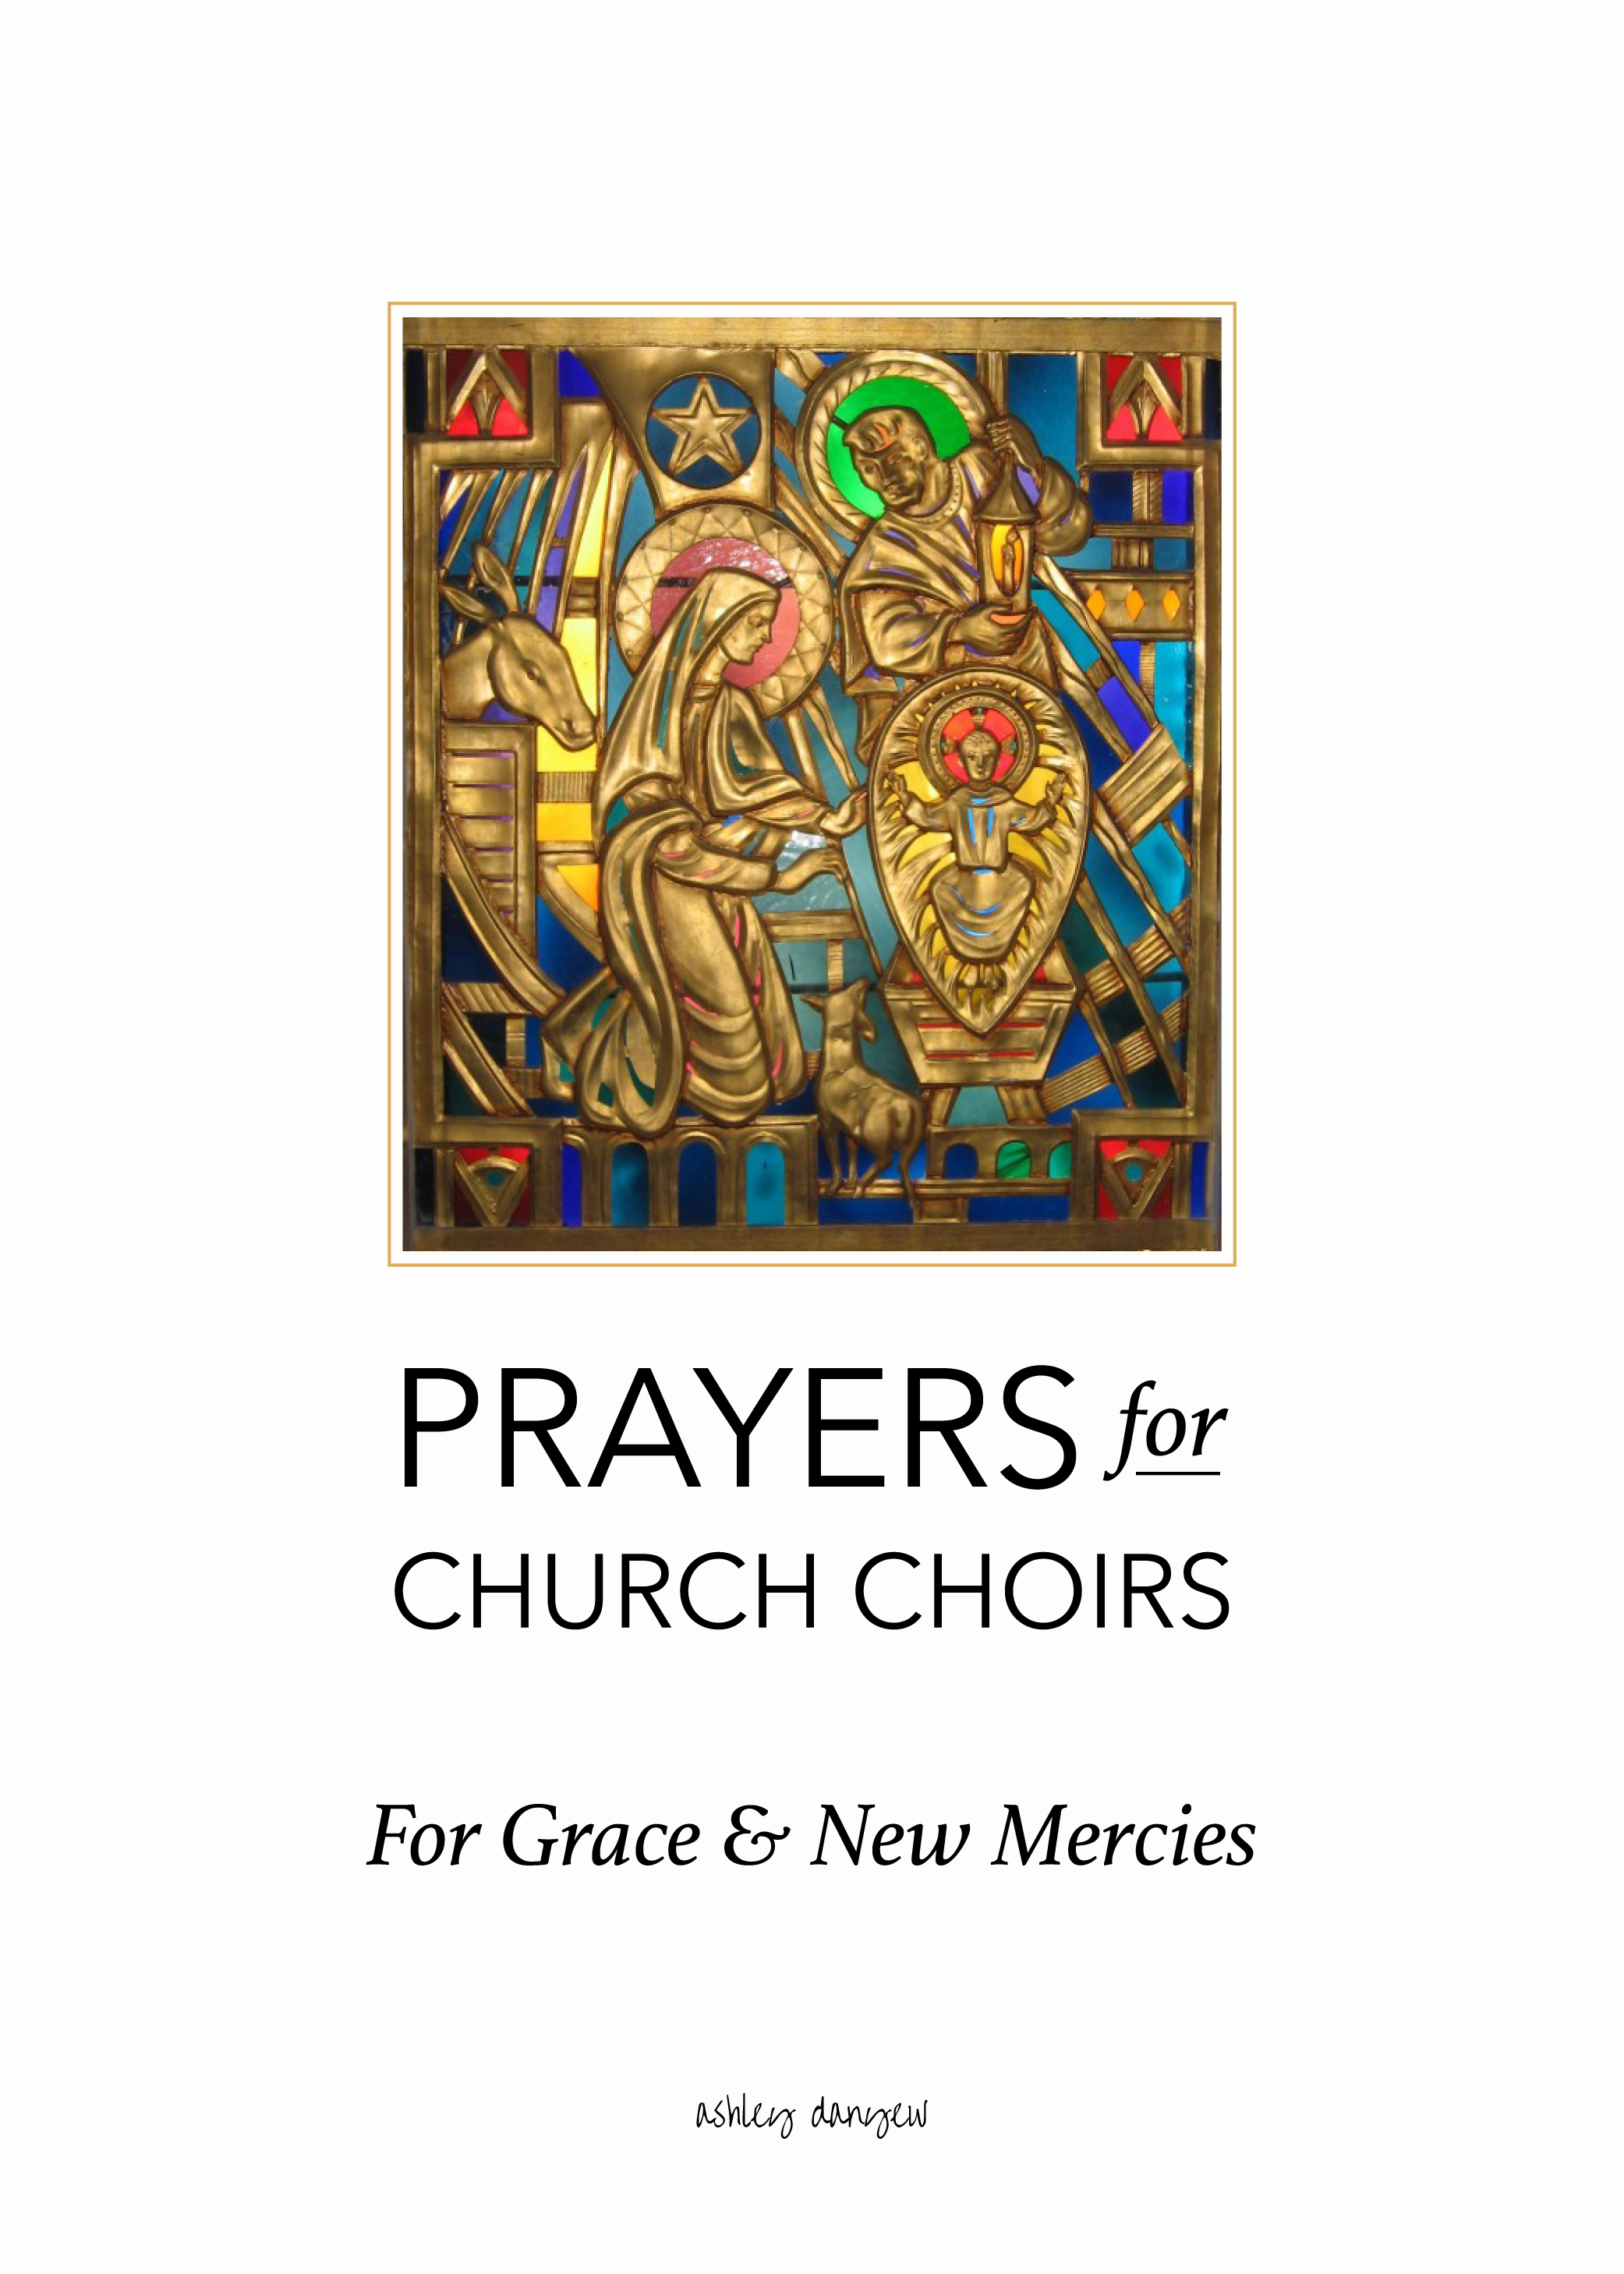 Prayers for Church Choirs_Grace-03.png